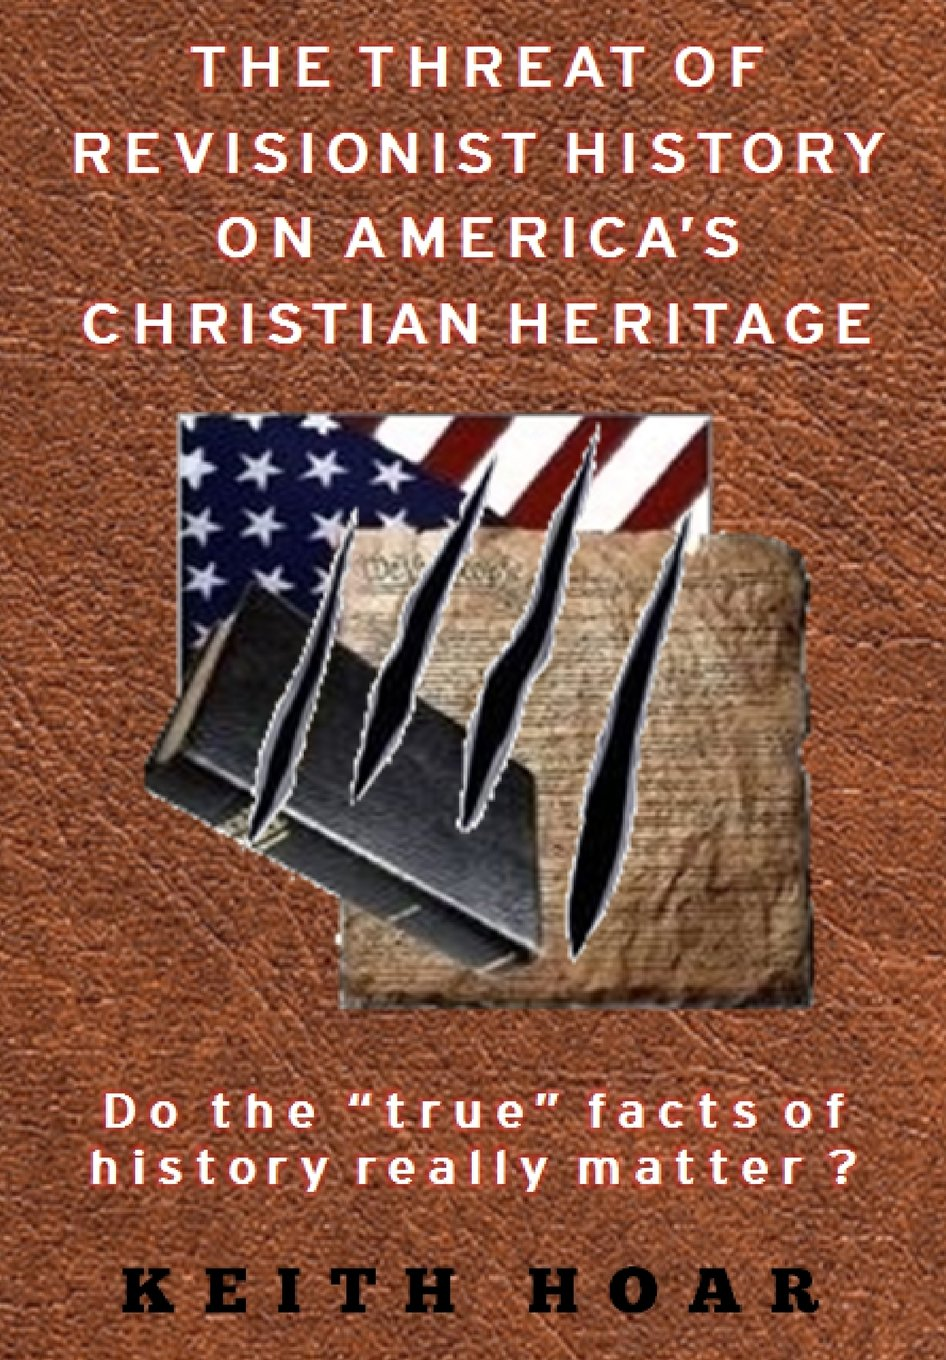 The Threat of Revisionist History on America's Christian Heritage